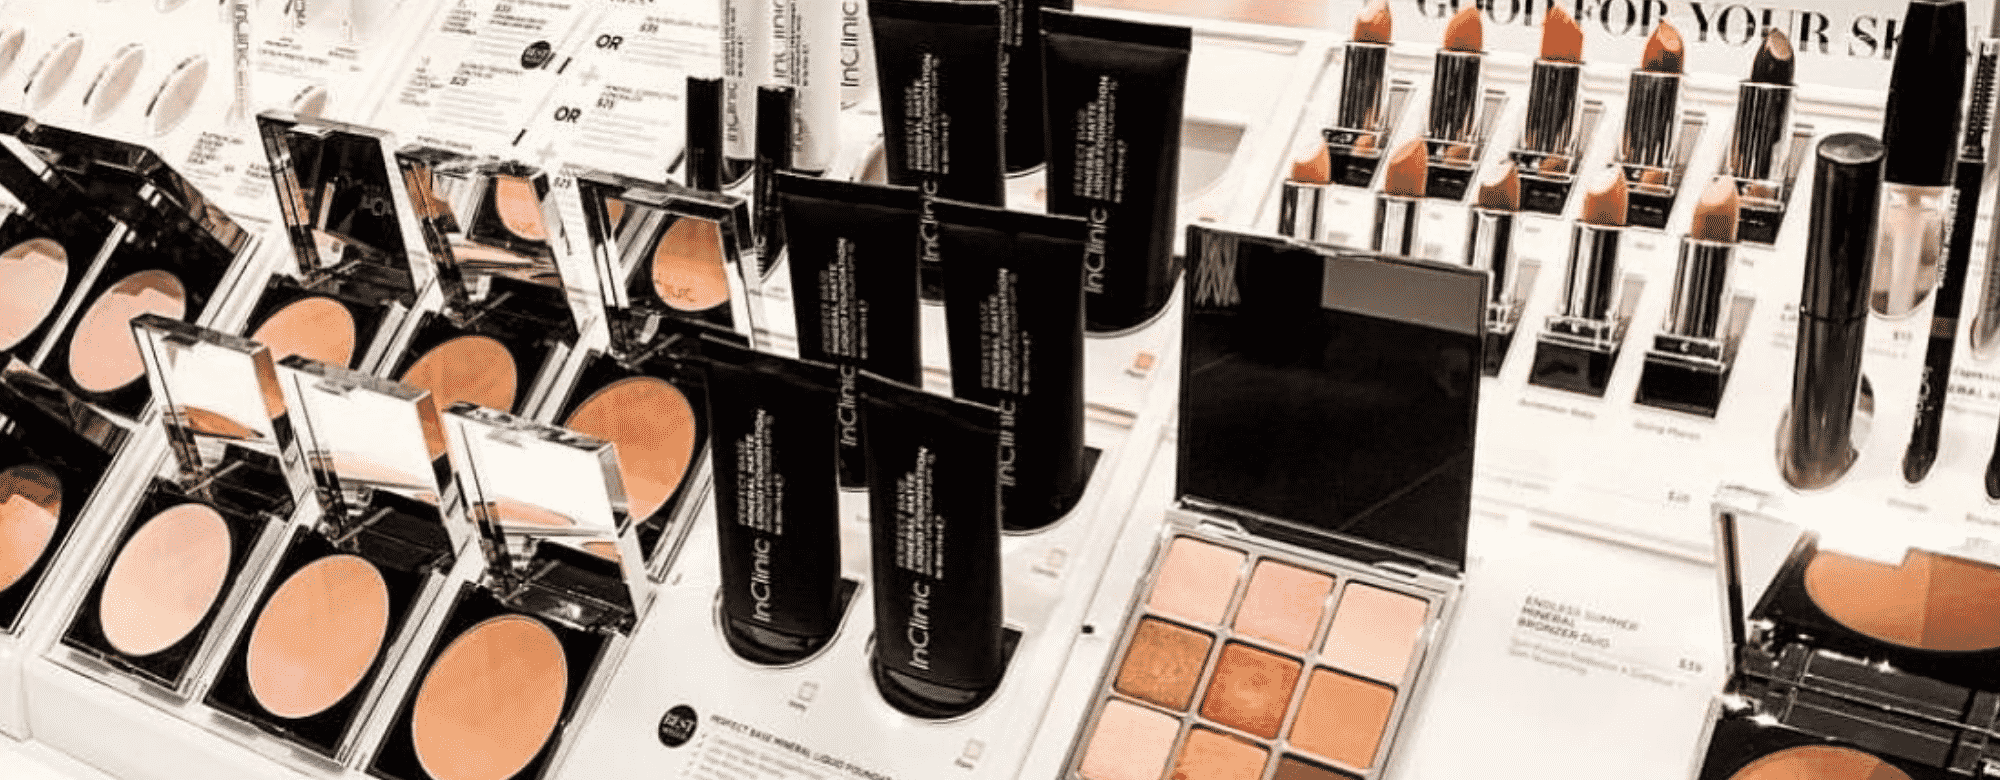 minerale make-up hasselt